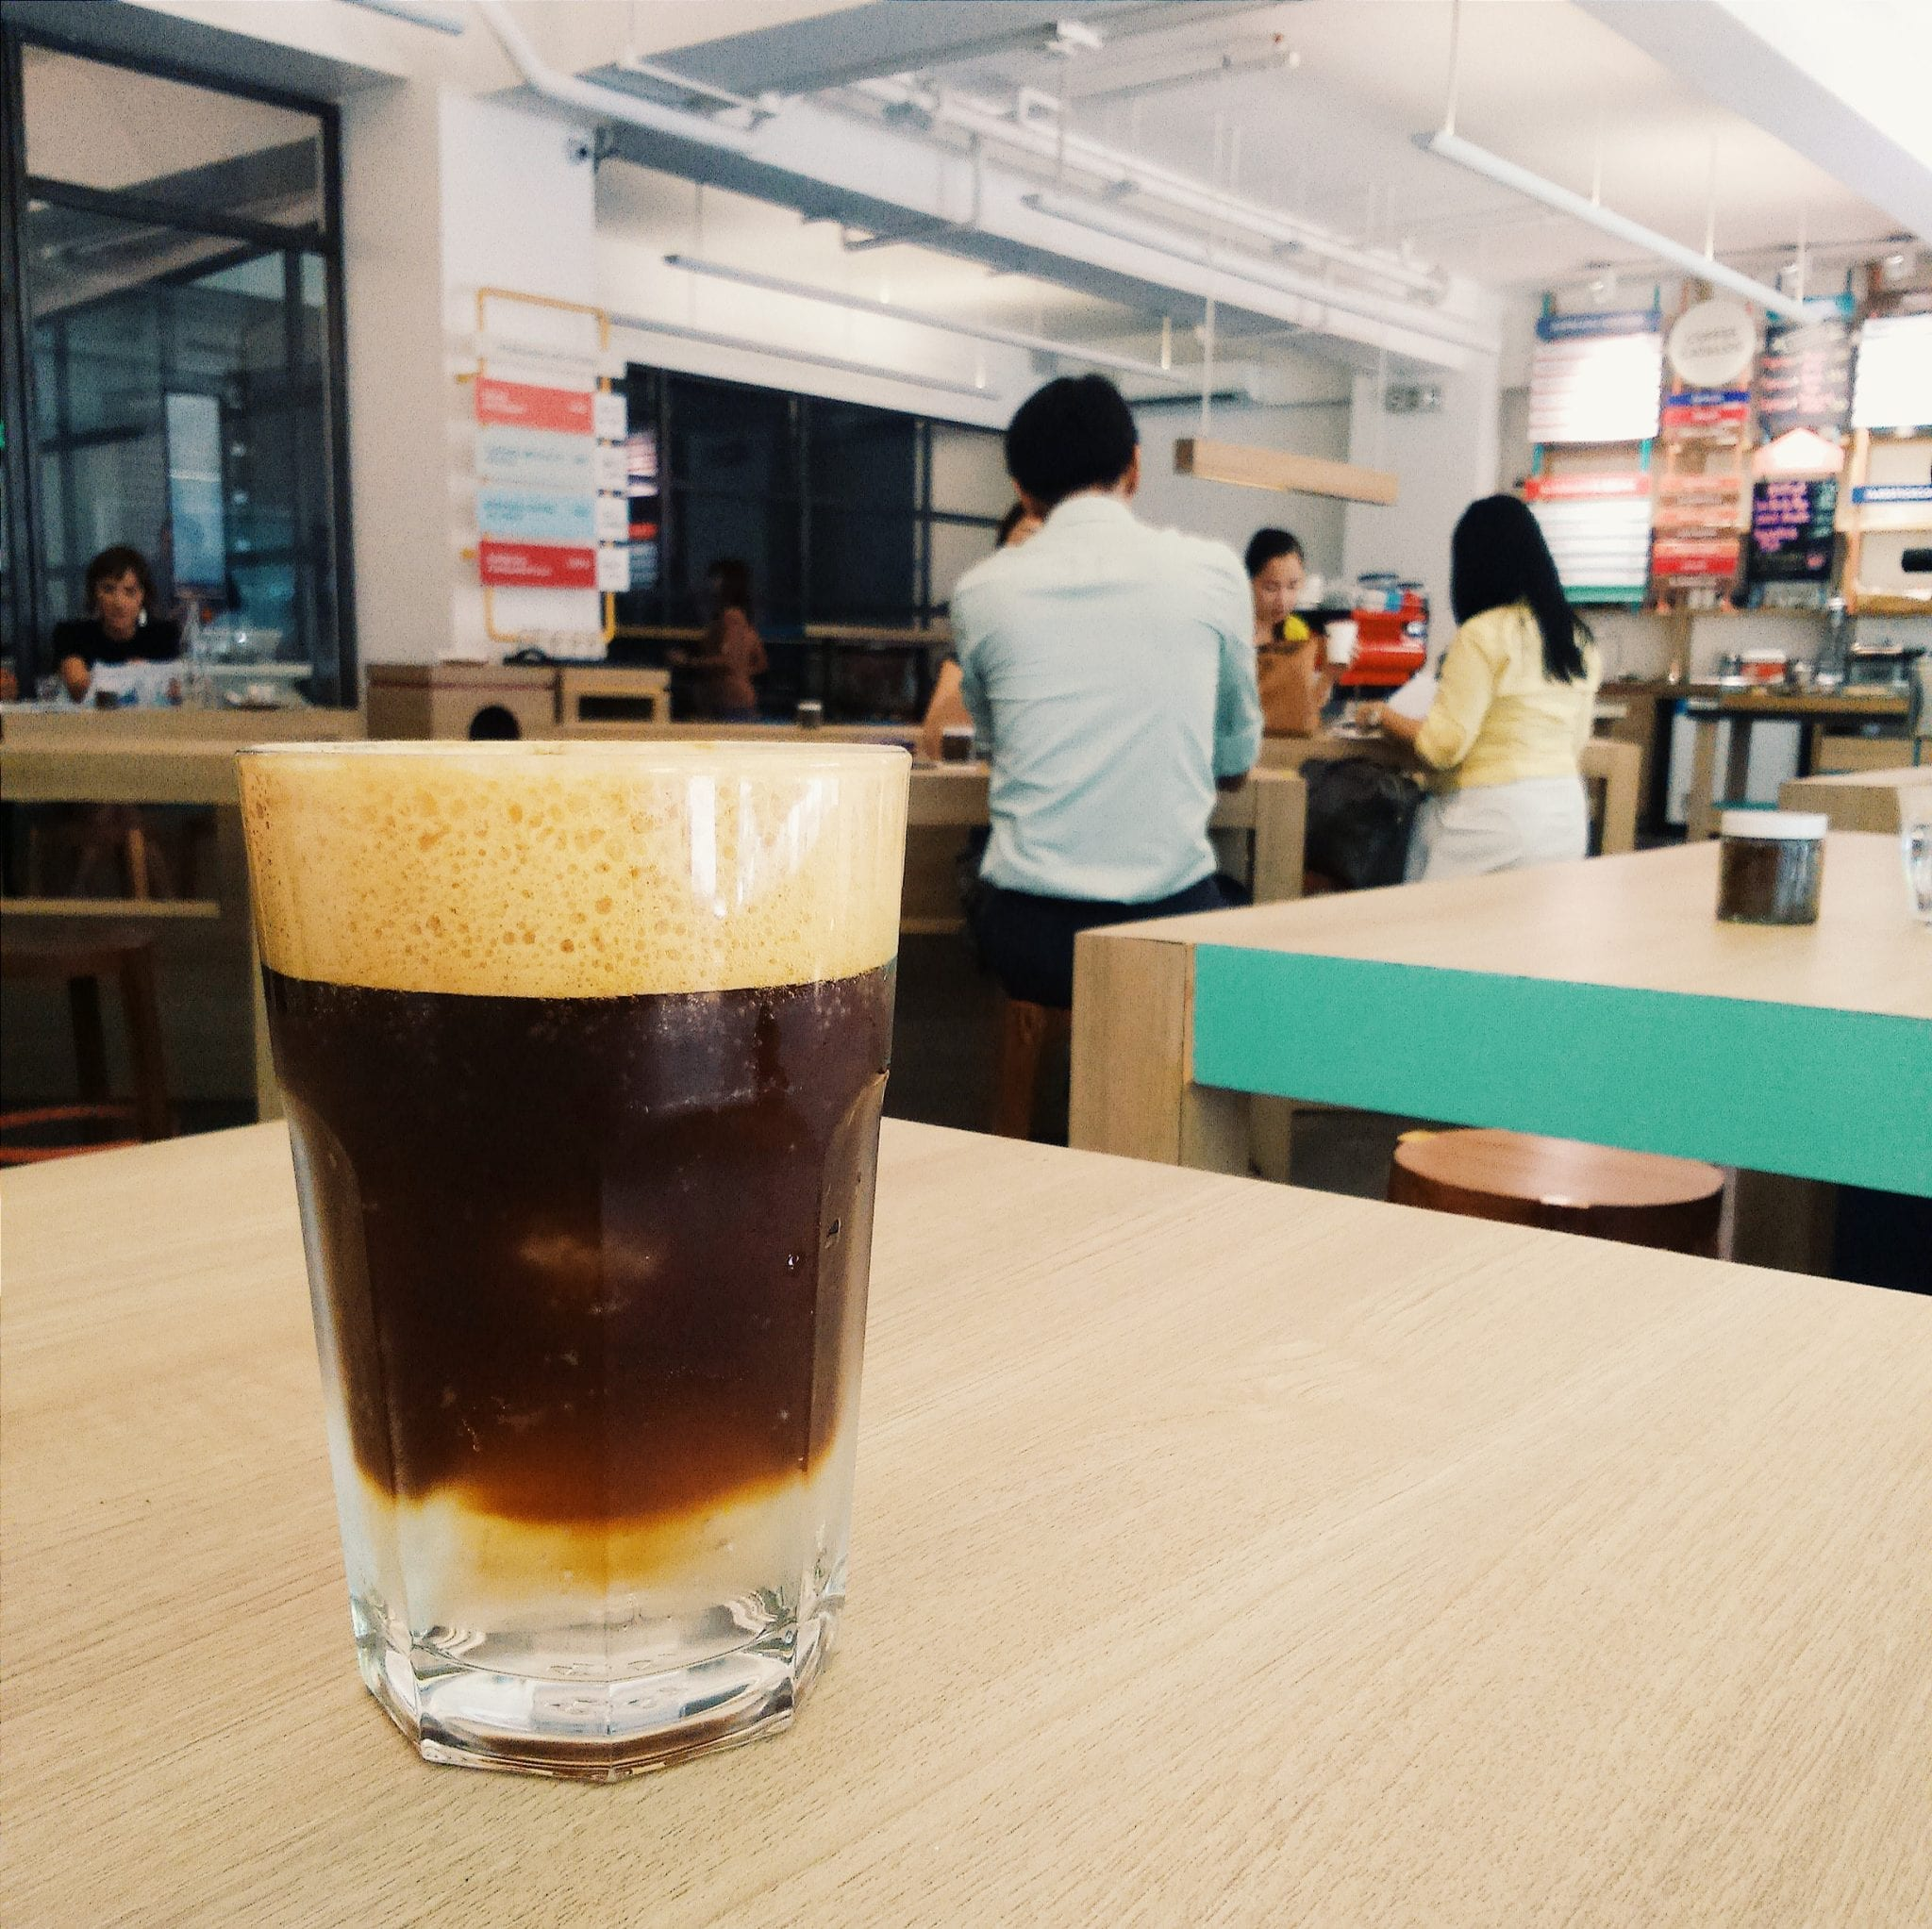 coffee shop industry in the philippines Jobs 1 - 20 of 40  all coffee shop jobs in the philippines on careerjetph, the search  hotel  management or equivalent ø experience in the same industry is an.